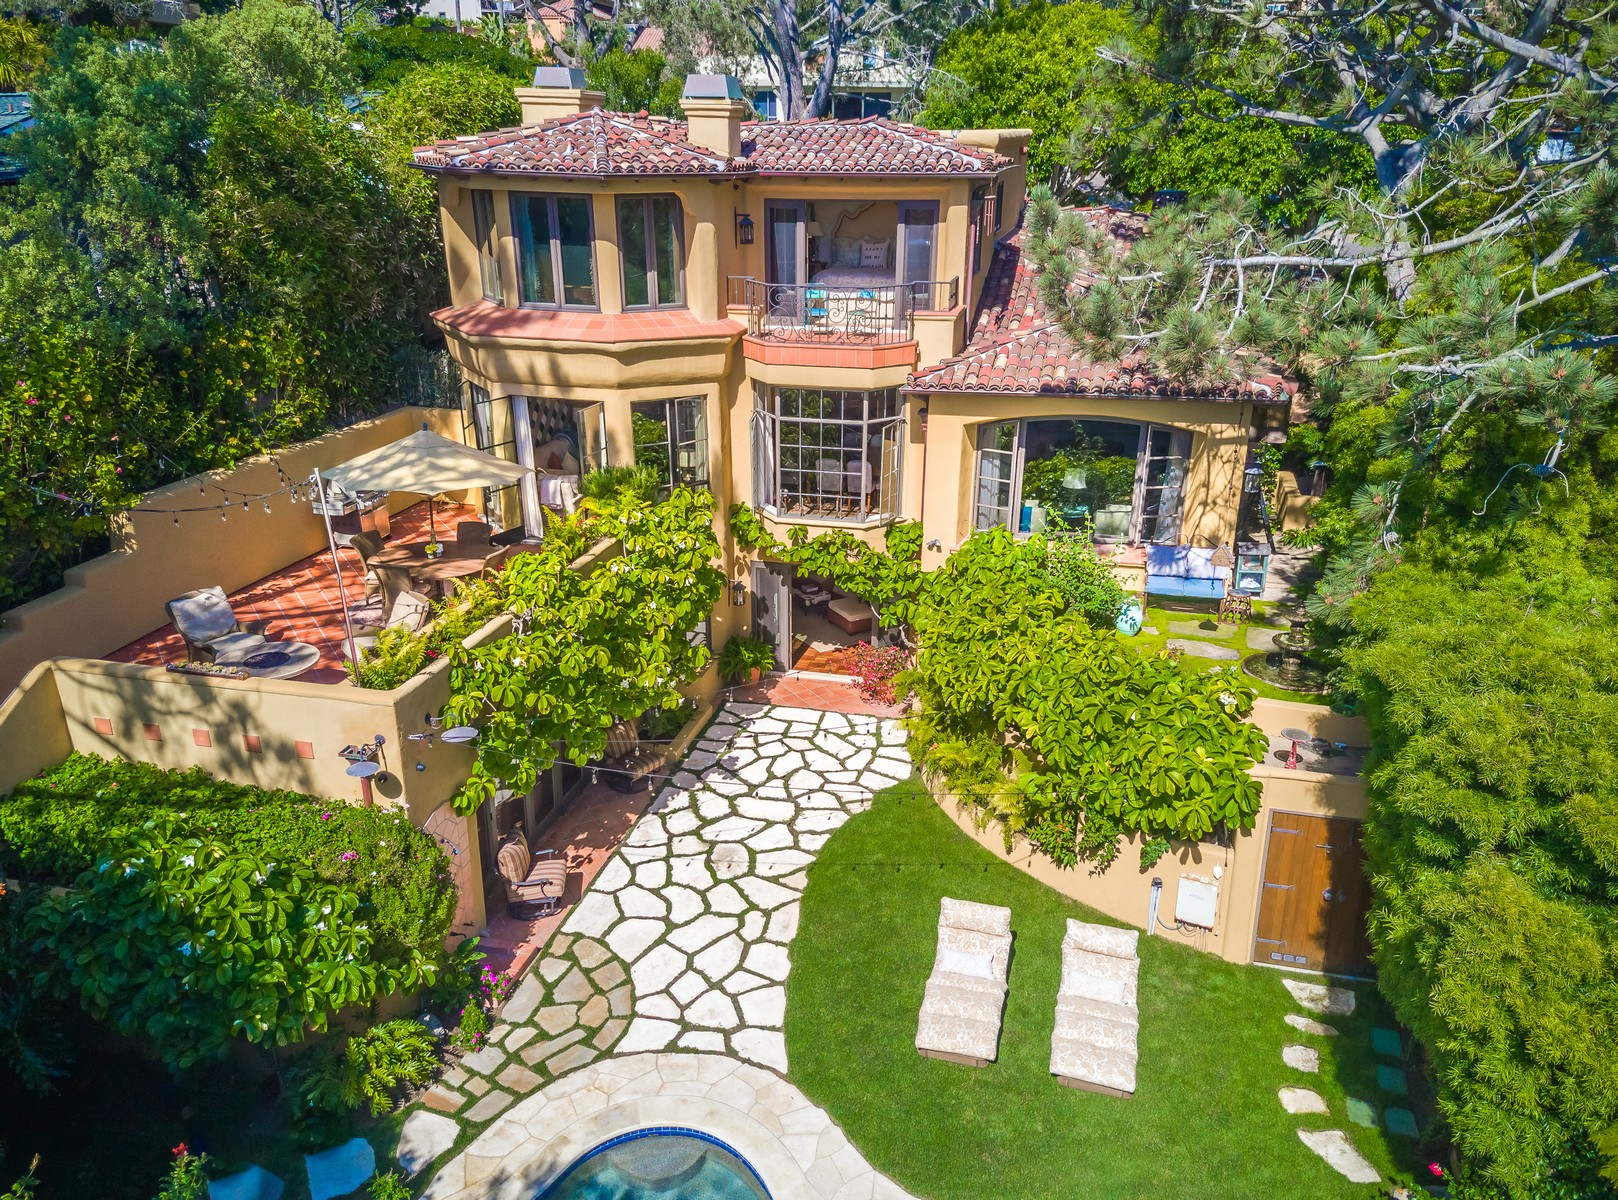 Single Family Home for Sale at 296 Ocean View Del Mar, California 92014 United States